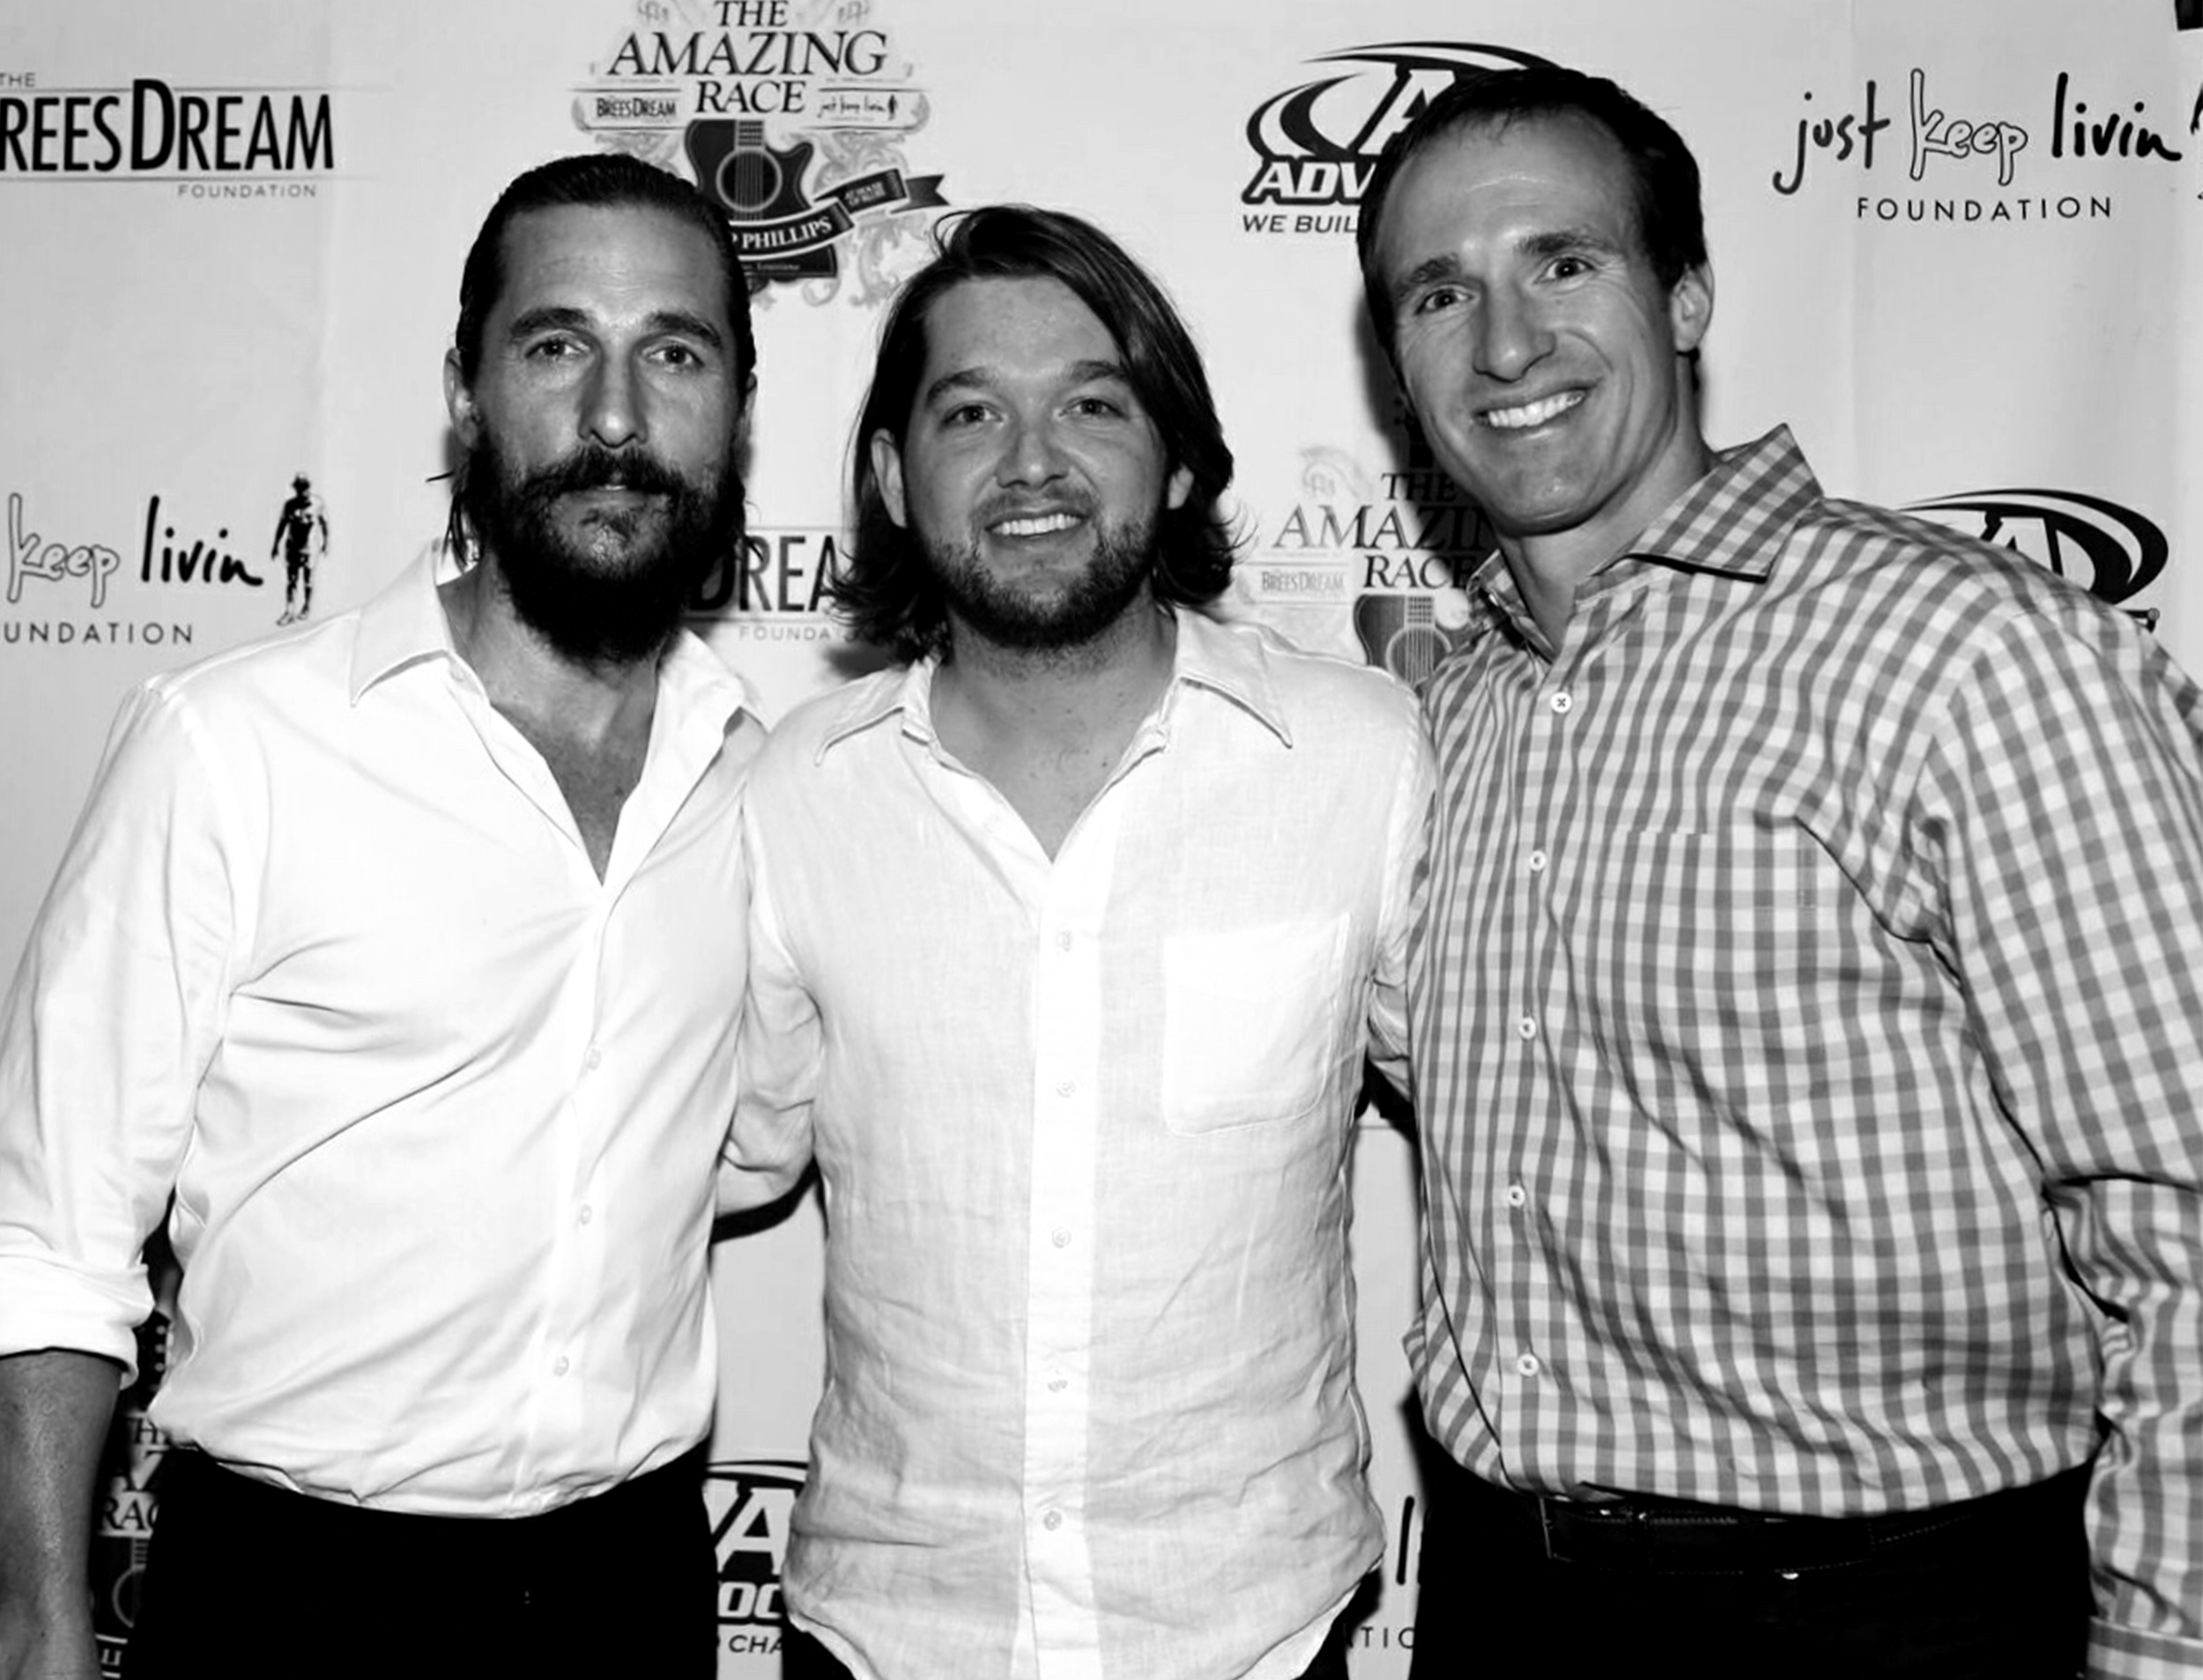 Matthew Mcconaughey, Drew Brees, and Tripp before The Amazing Race Event and Fundraiser.